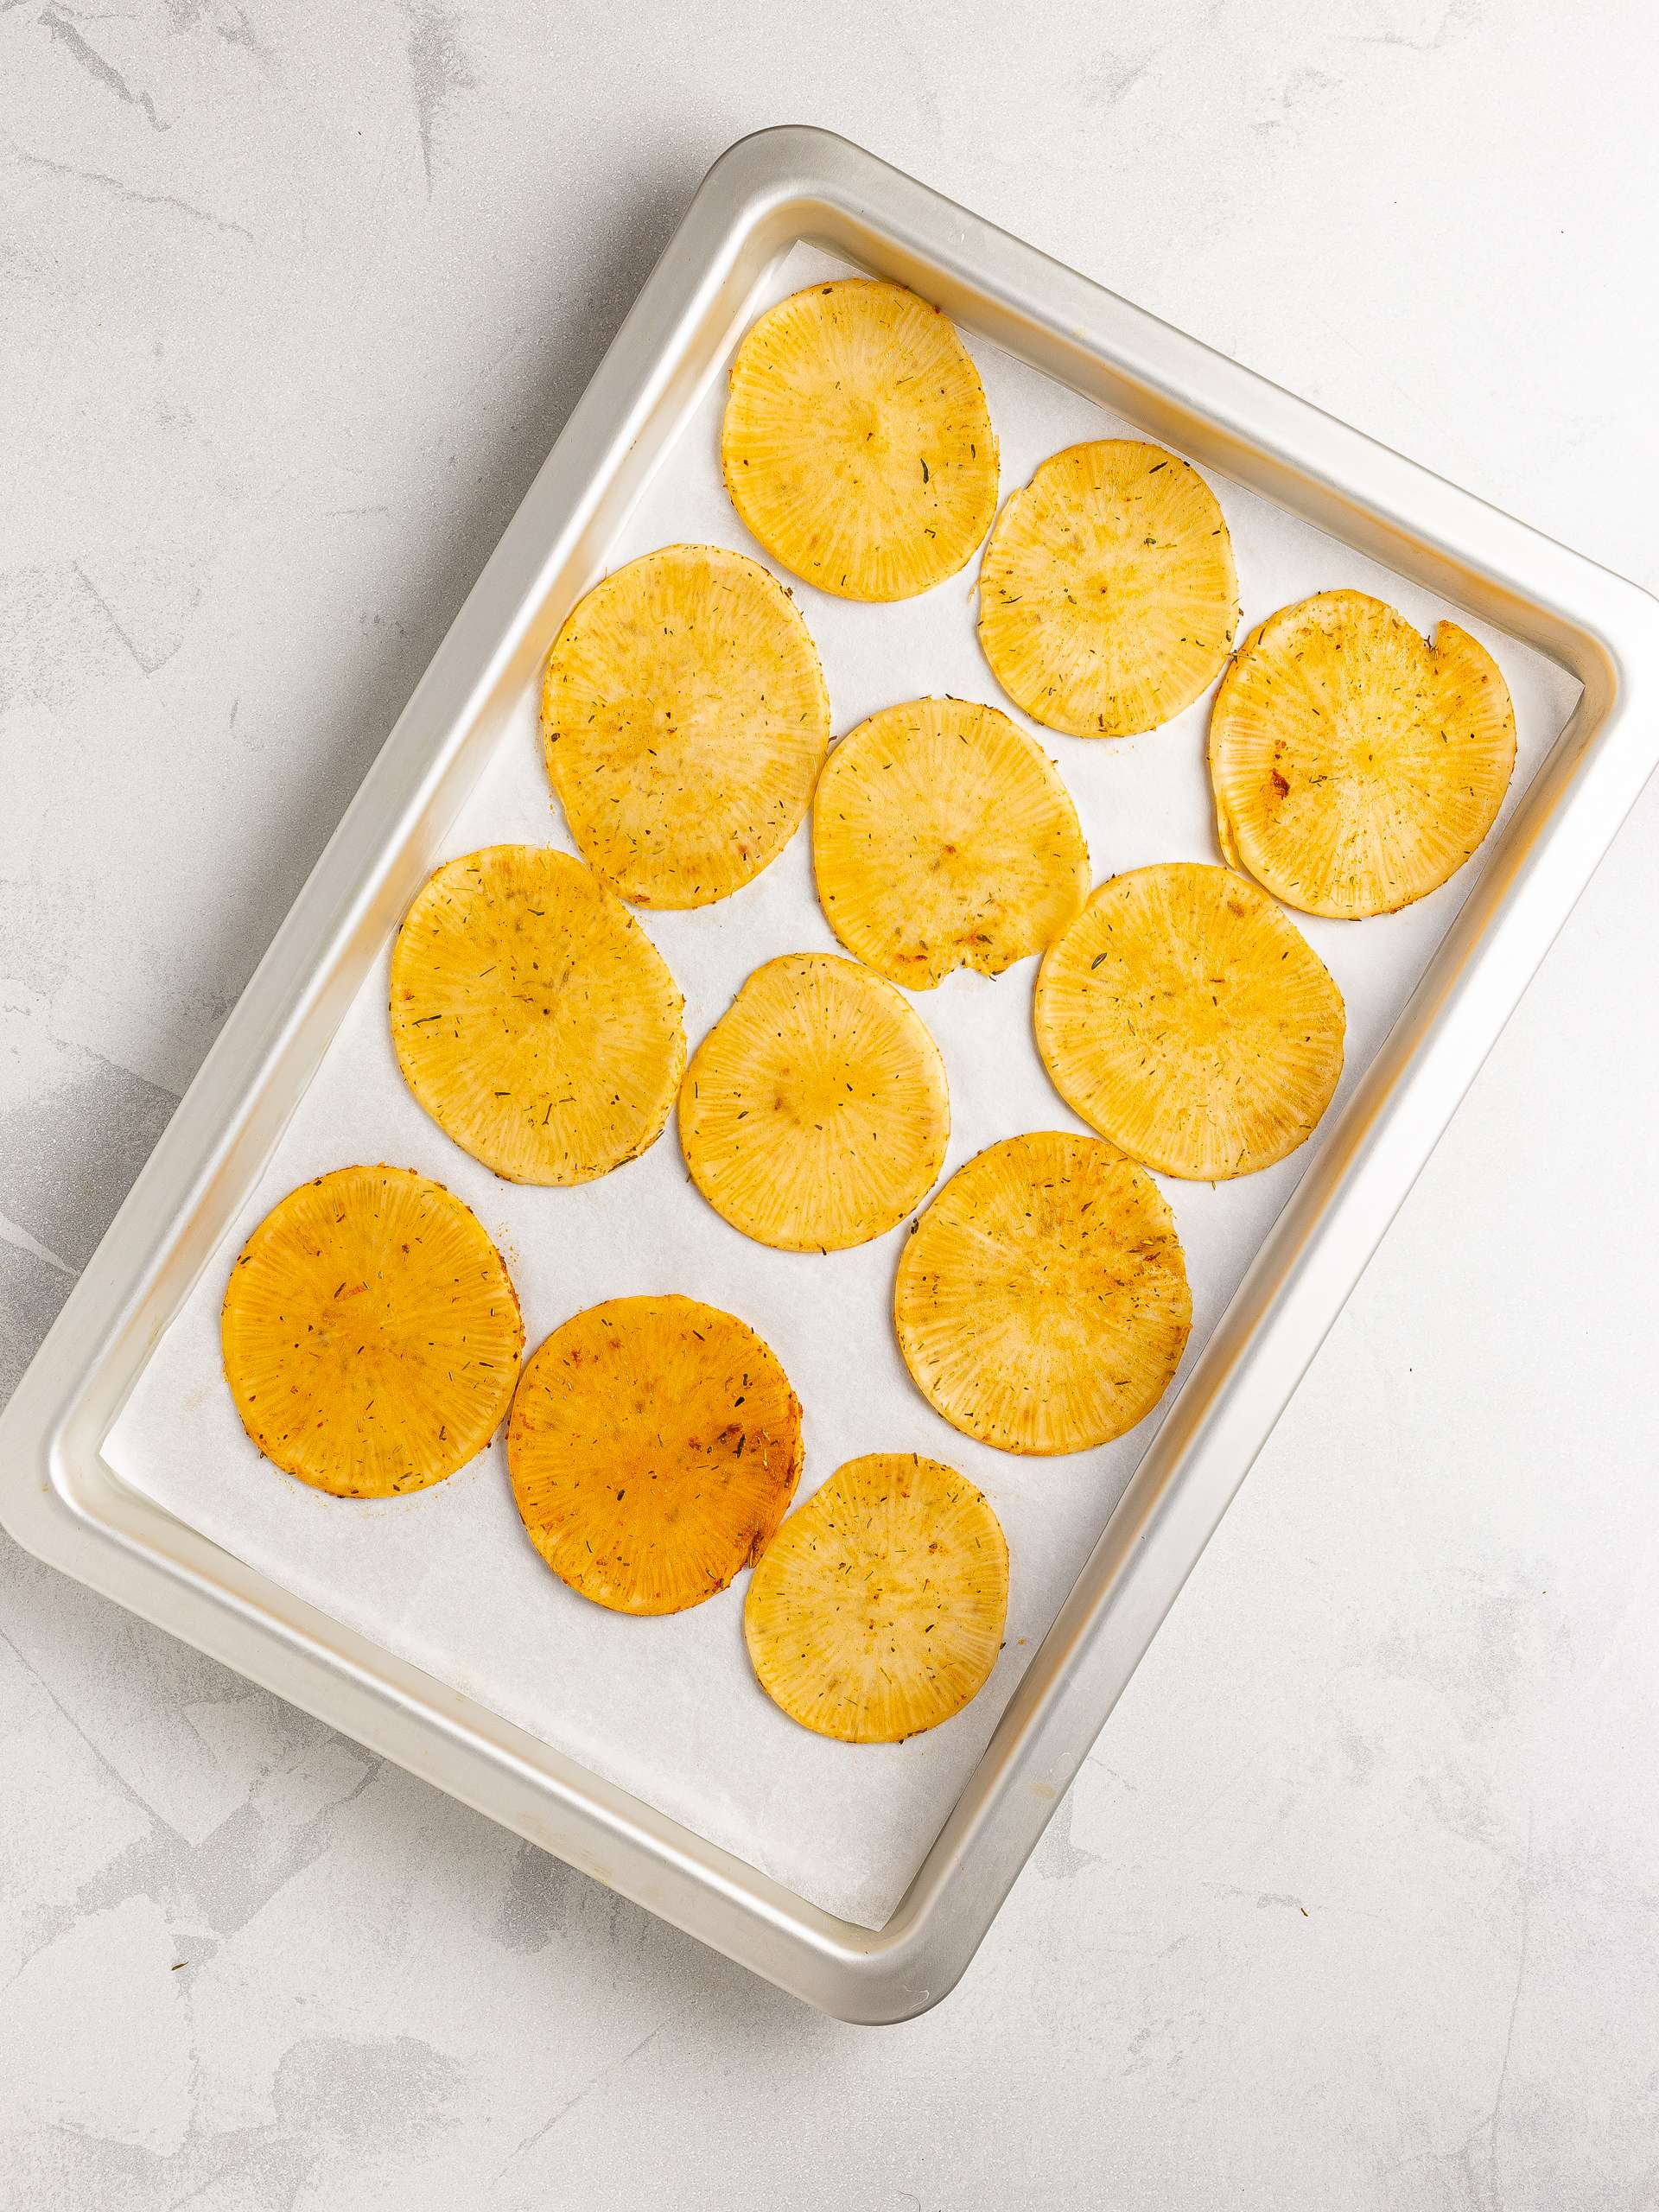 daikon chips on a baking tray